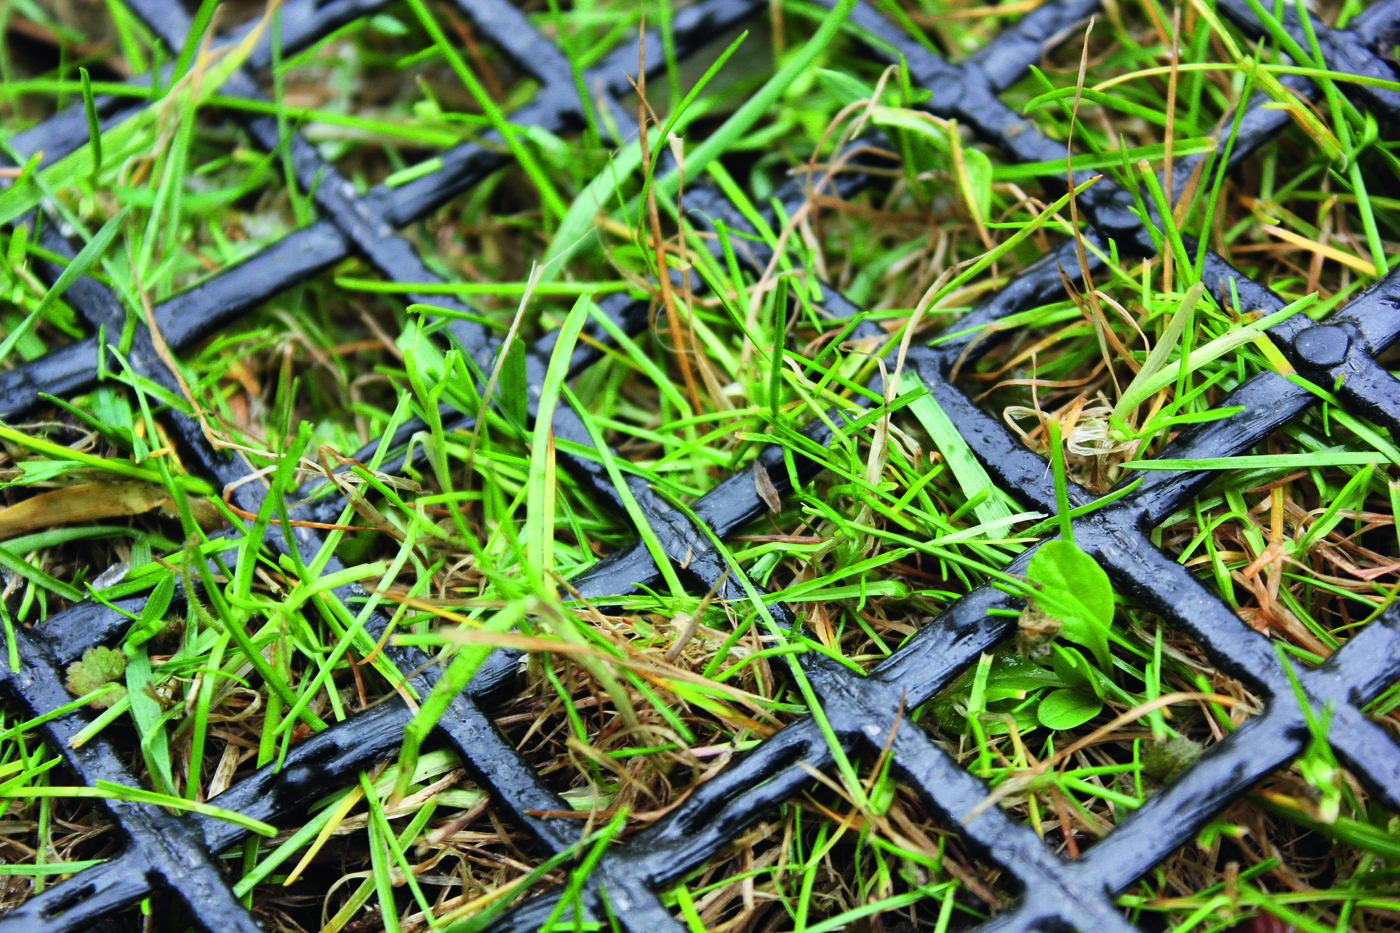 Lawn protection screen mats